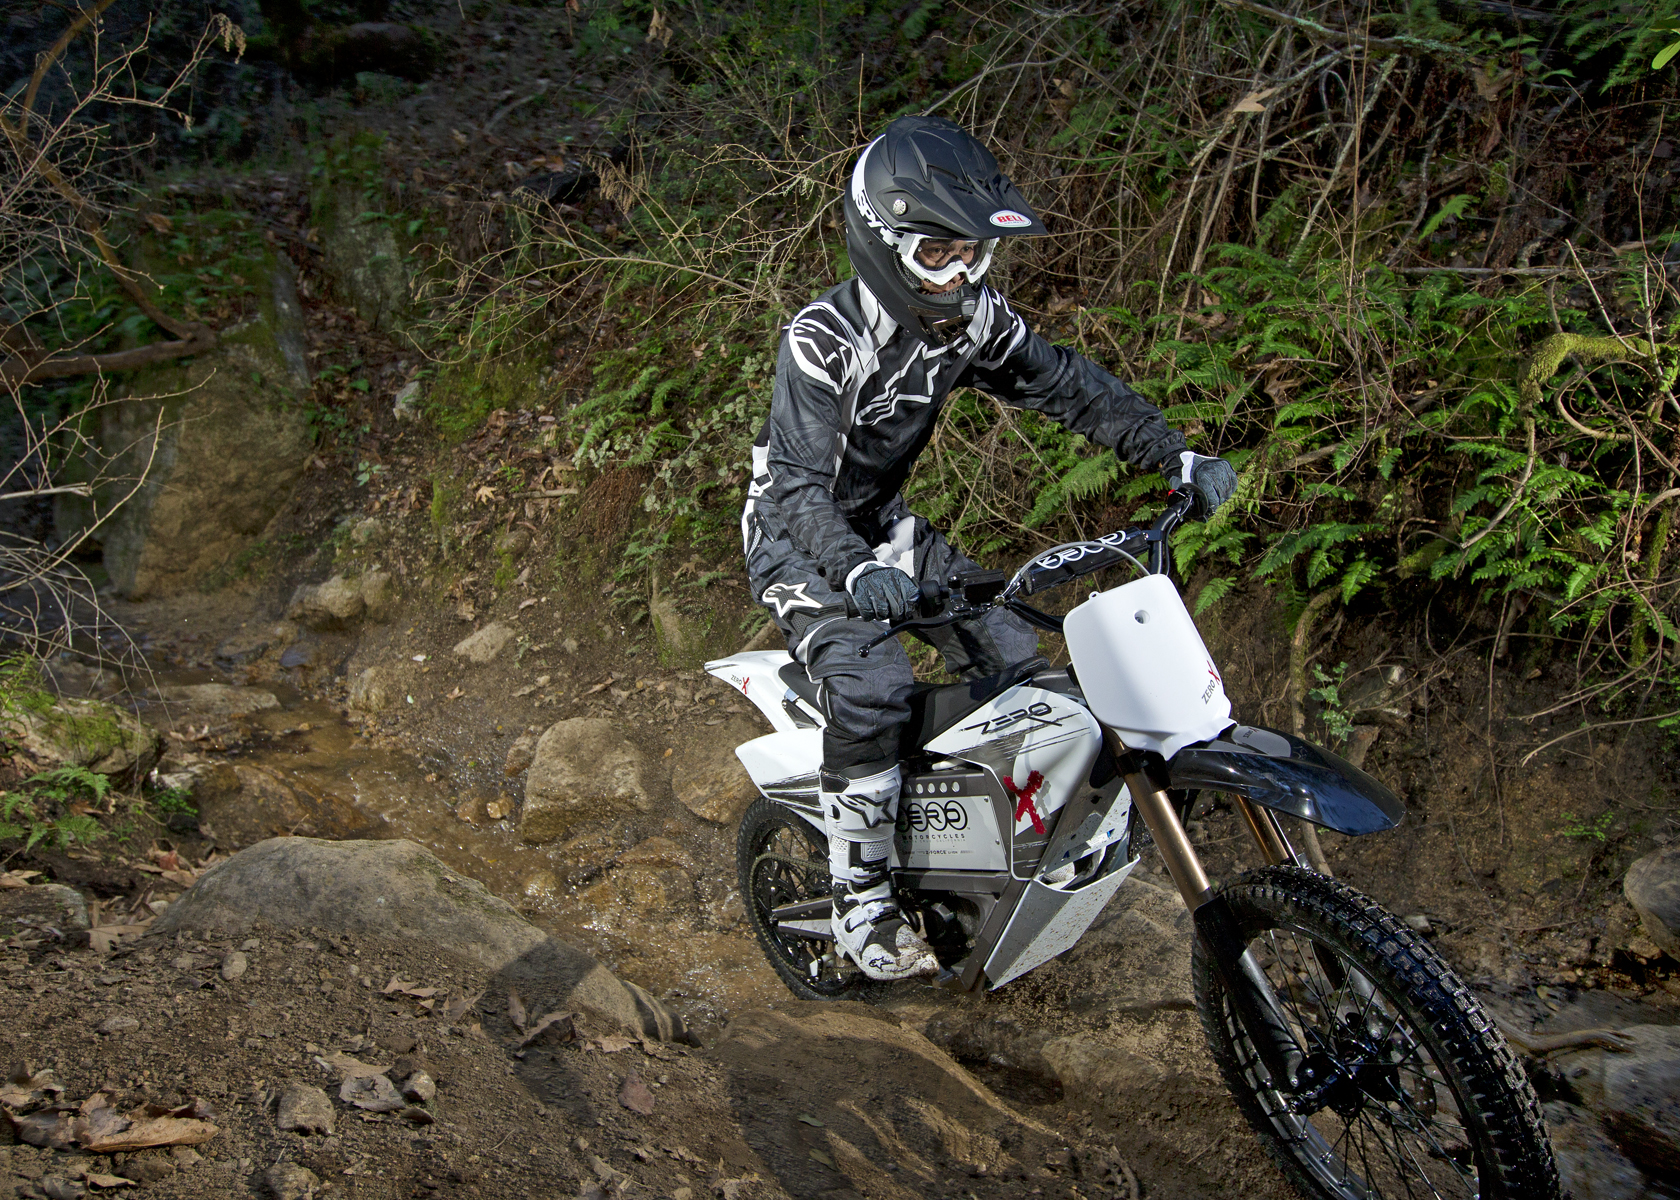 2011 Zero X Electric Motorcycle: Cruising up a Rocky Path